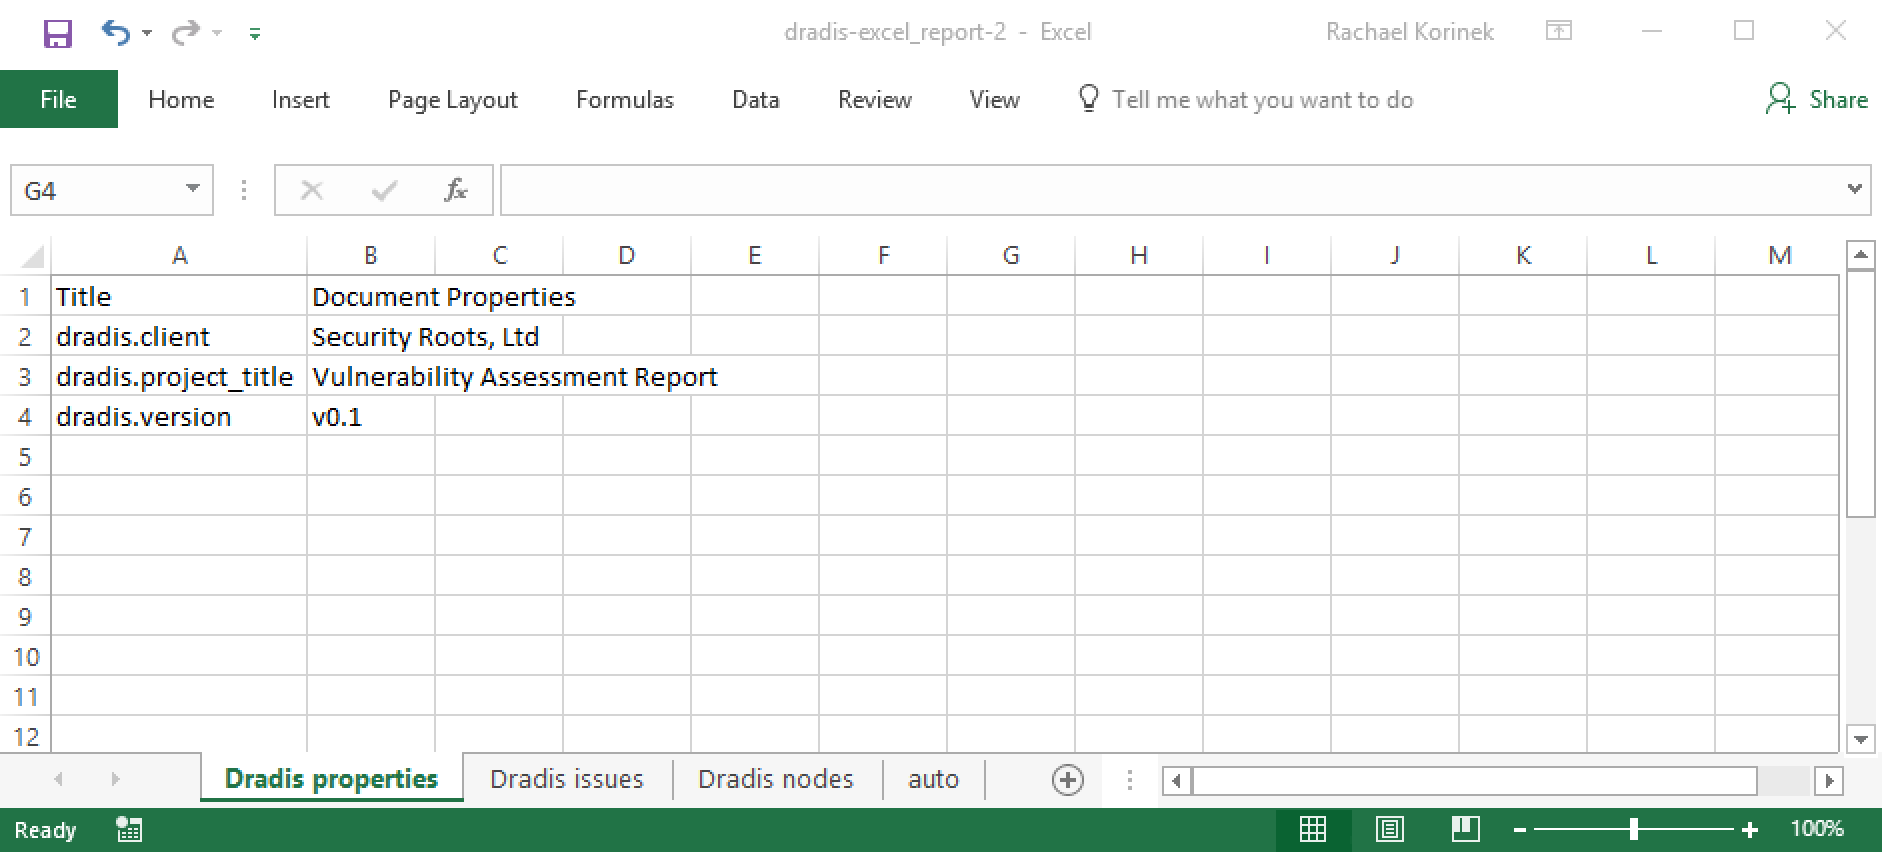 Create an Excel Template | Dradis Pro Help